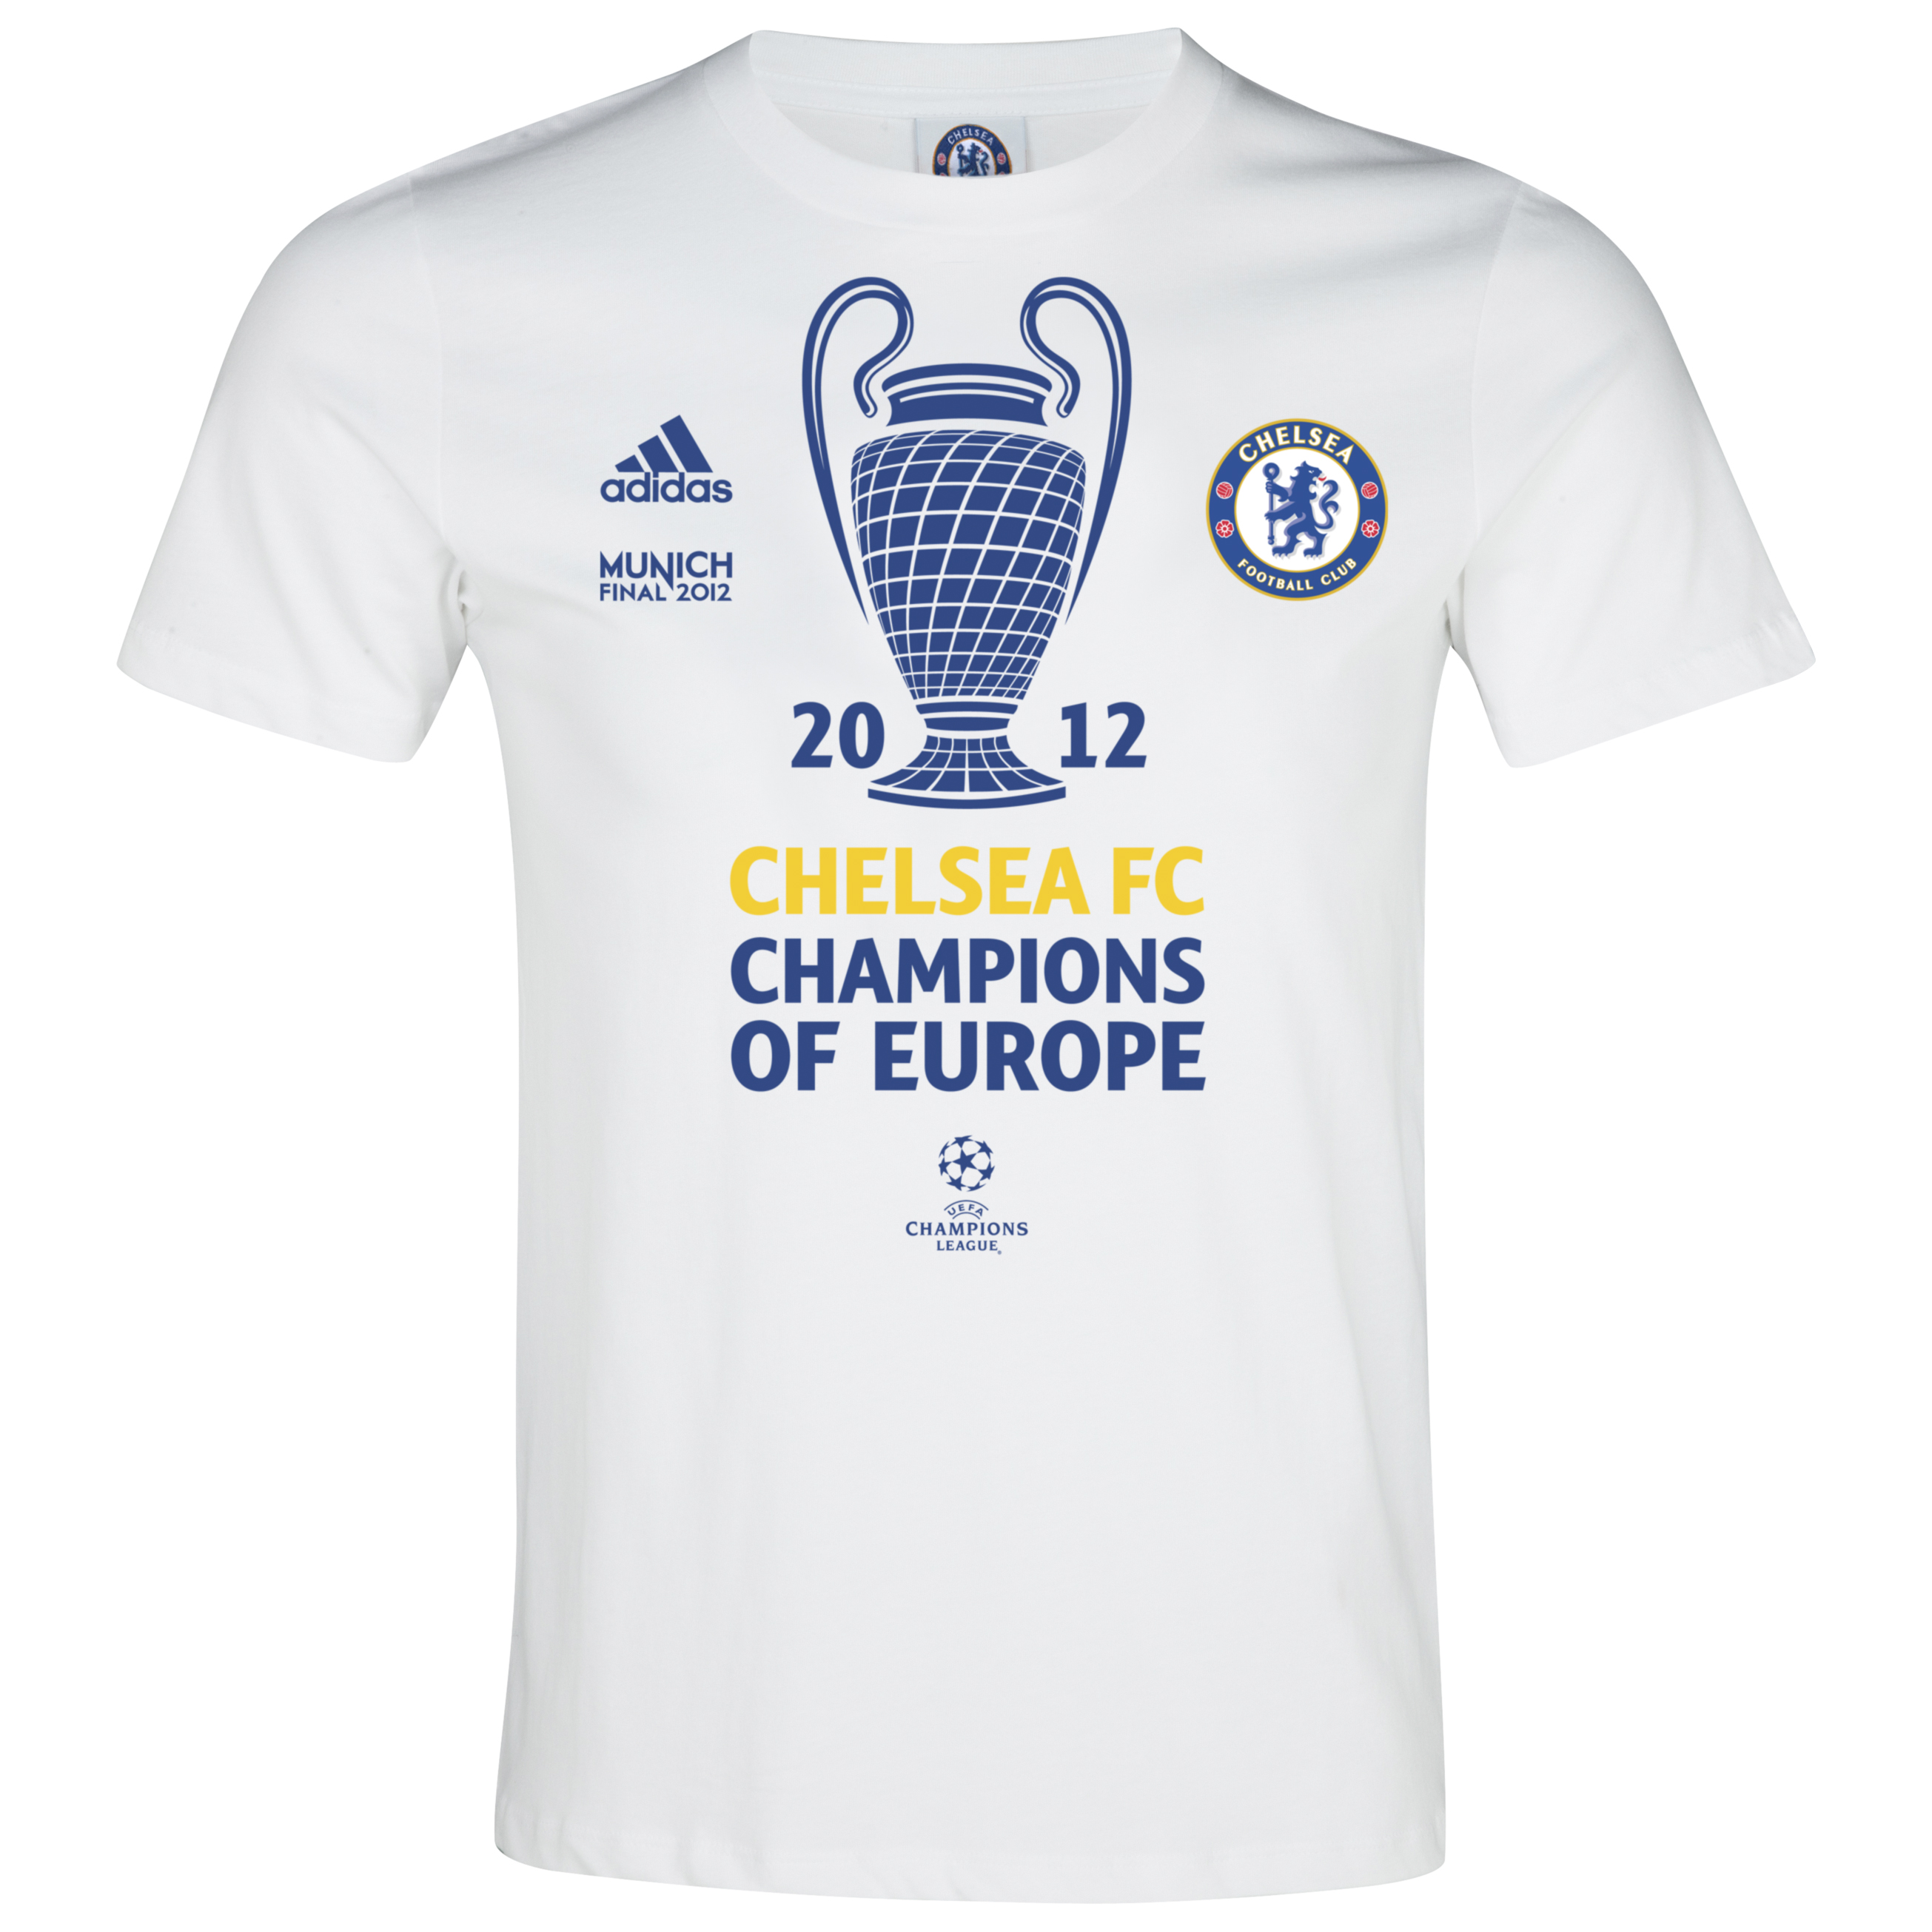 adidas Chelsea UEFA Champions League Winners 2012 T-Shirt - White Vapour